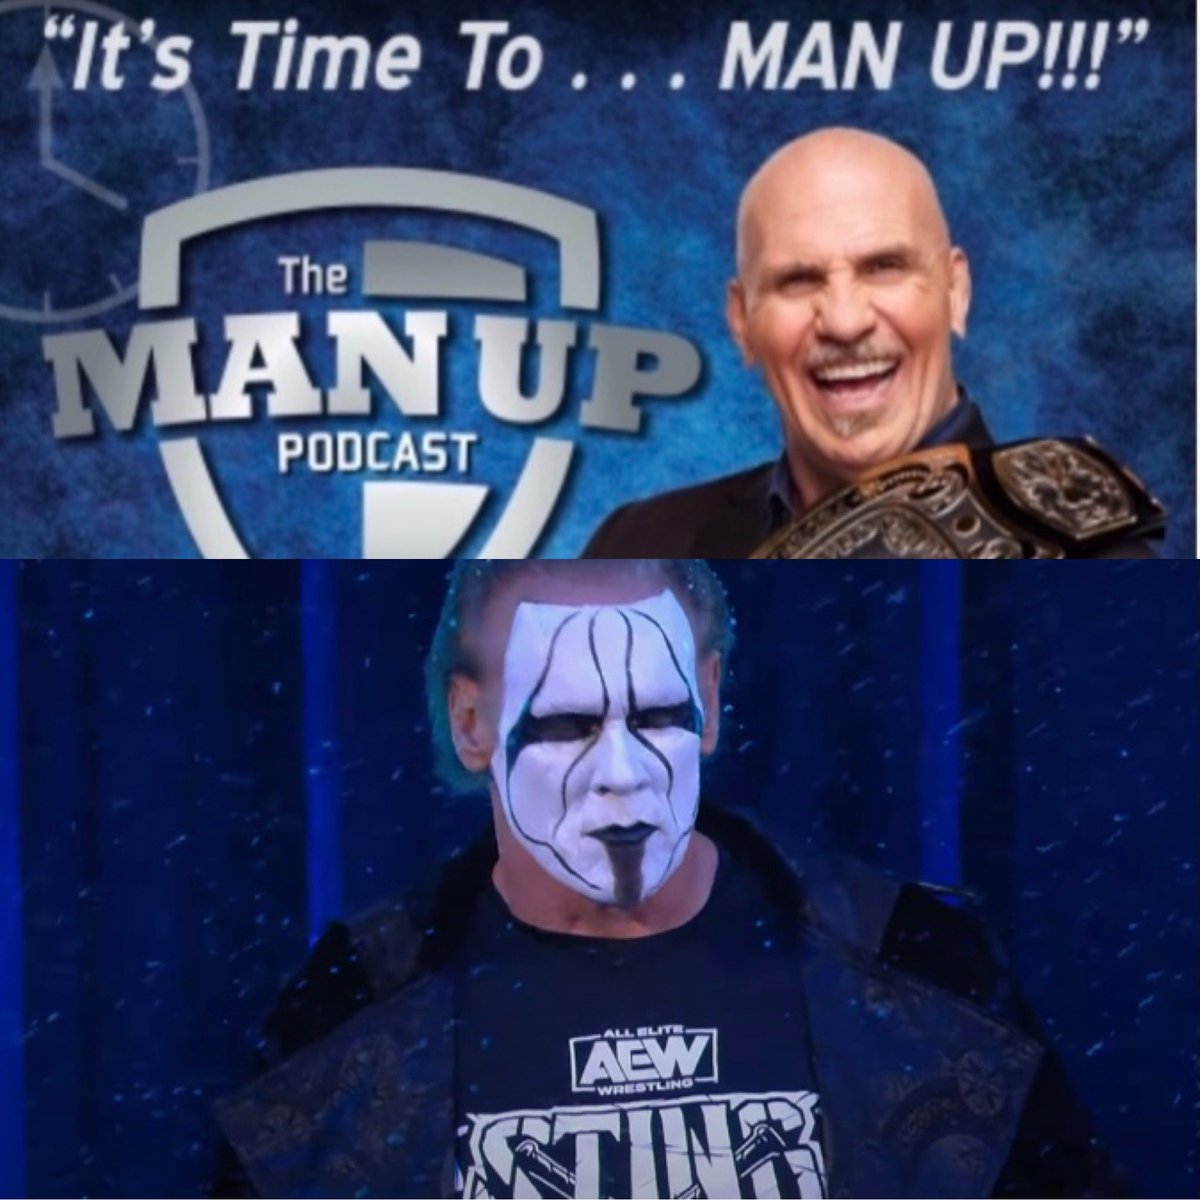 The Man, The Myth, The Legend, The Icon @Sting is on the show today! Be sure to download/subscribe to #ItsTimeToManUp and catch up on all the episodes. These interviews give interesting insight into the lives of others and will perhaps inspire you. Enjoy and help spread the word